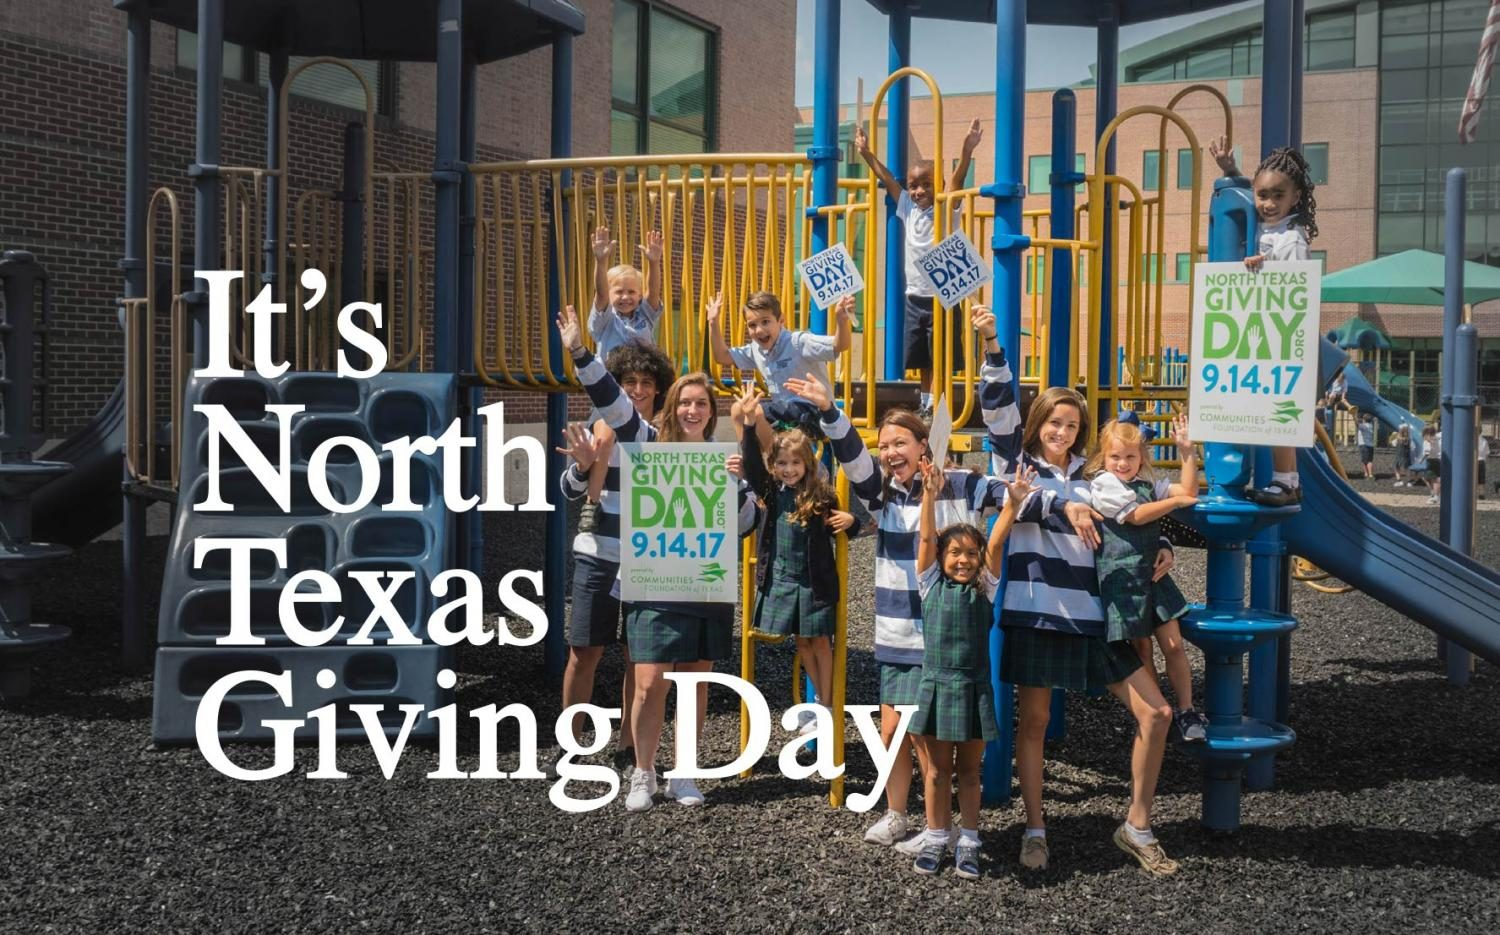 North+Texas+Giving+Day+benefits+students+of+all+ages.+The+School+hopes+to+beat+the+%24327%2C000+raised+last+year.